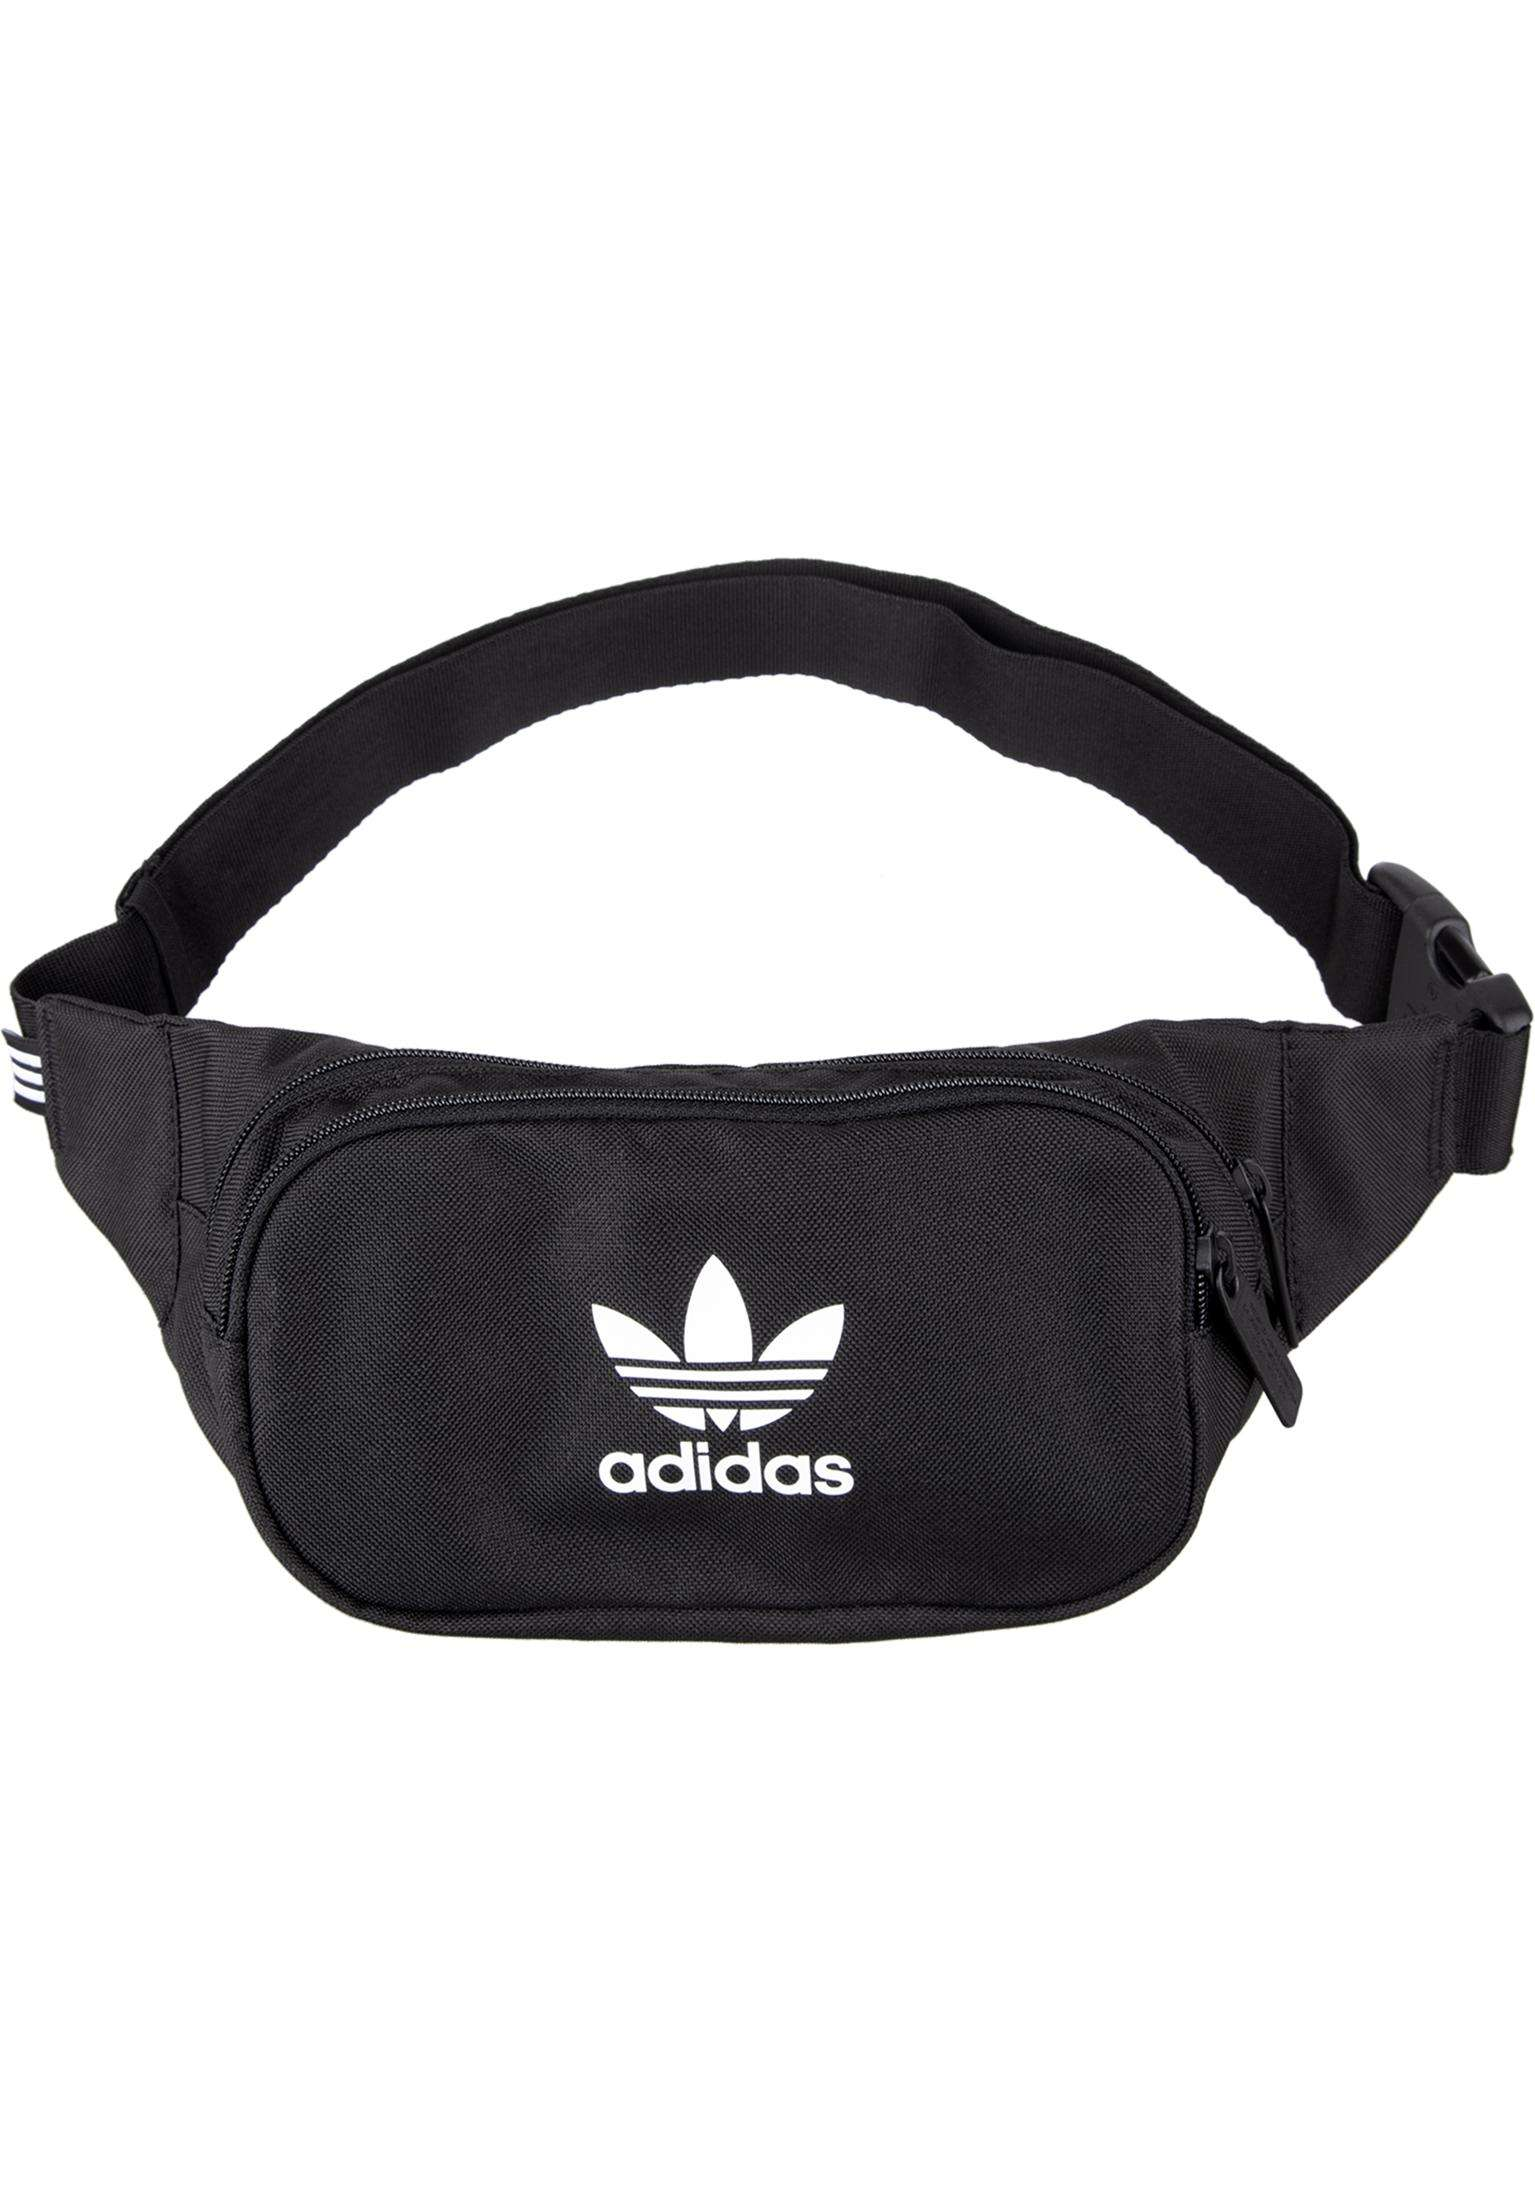 Essential Cbody adidas Hip Bags in black for Men